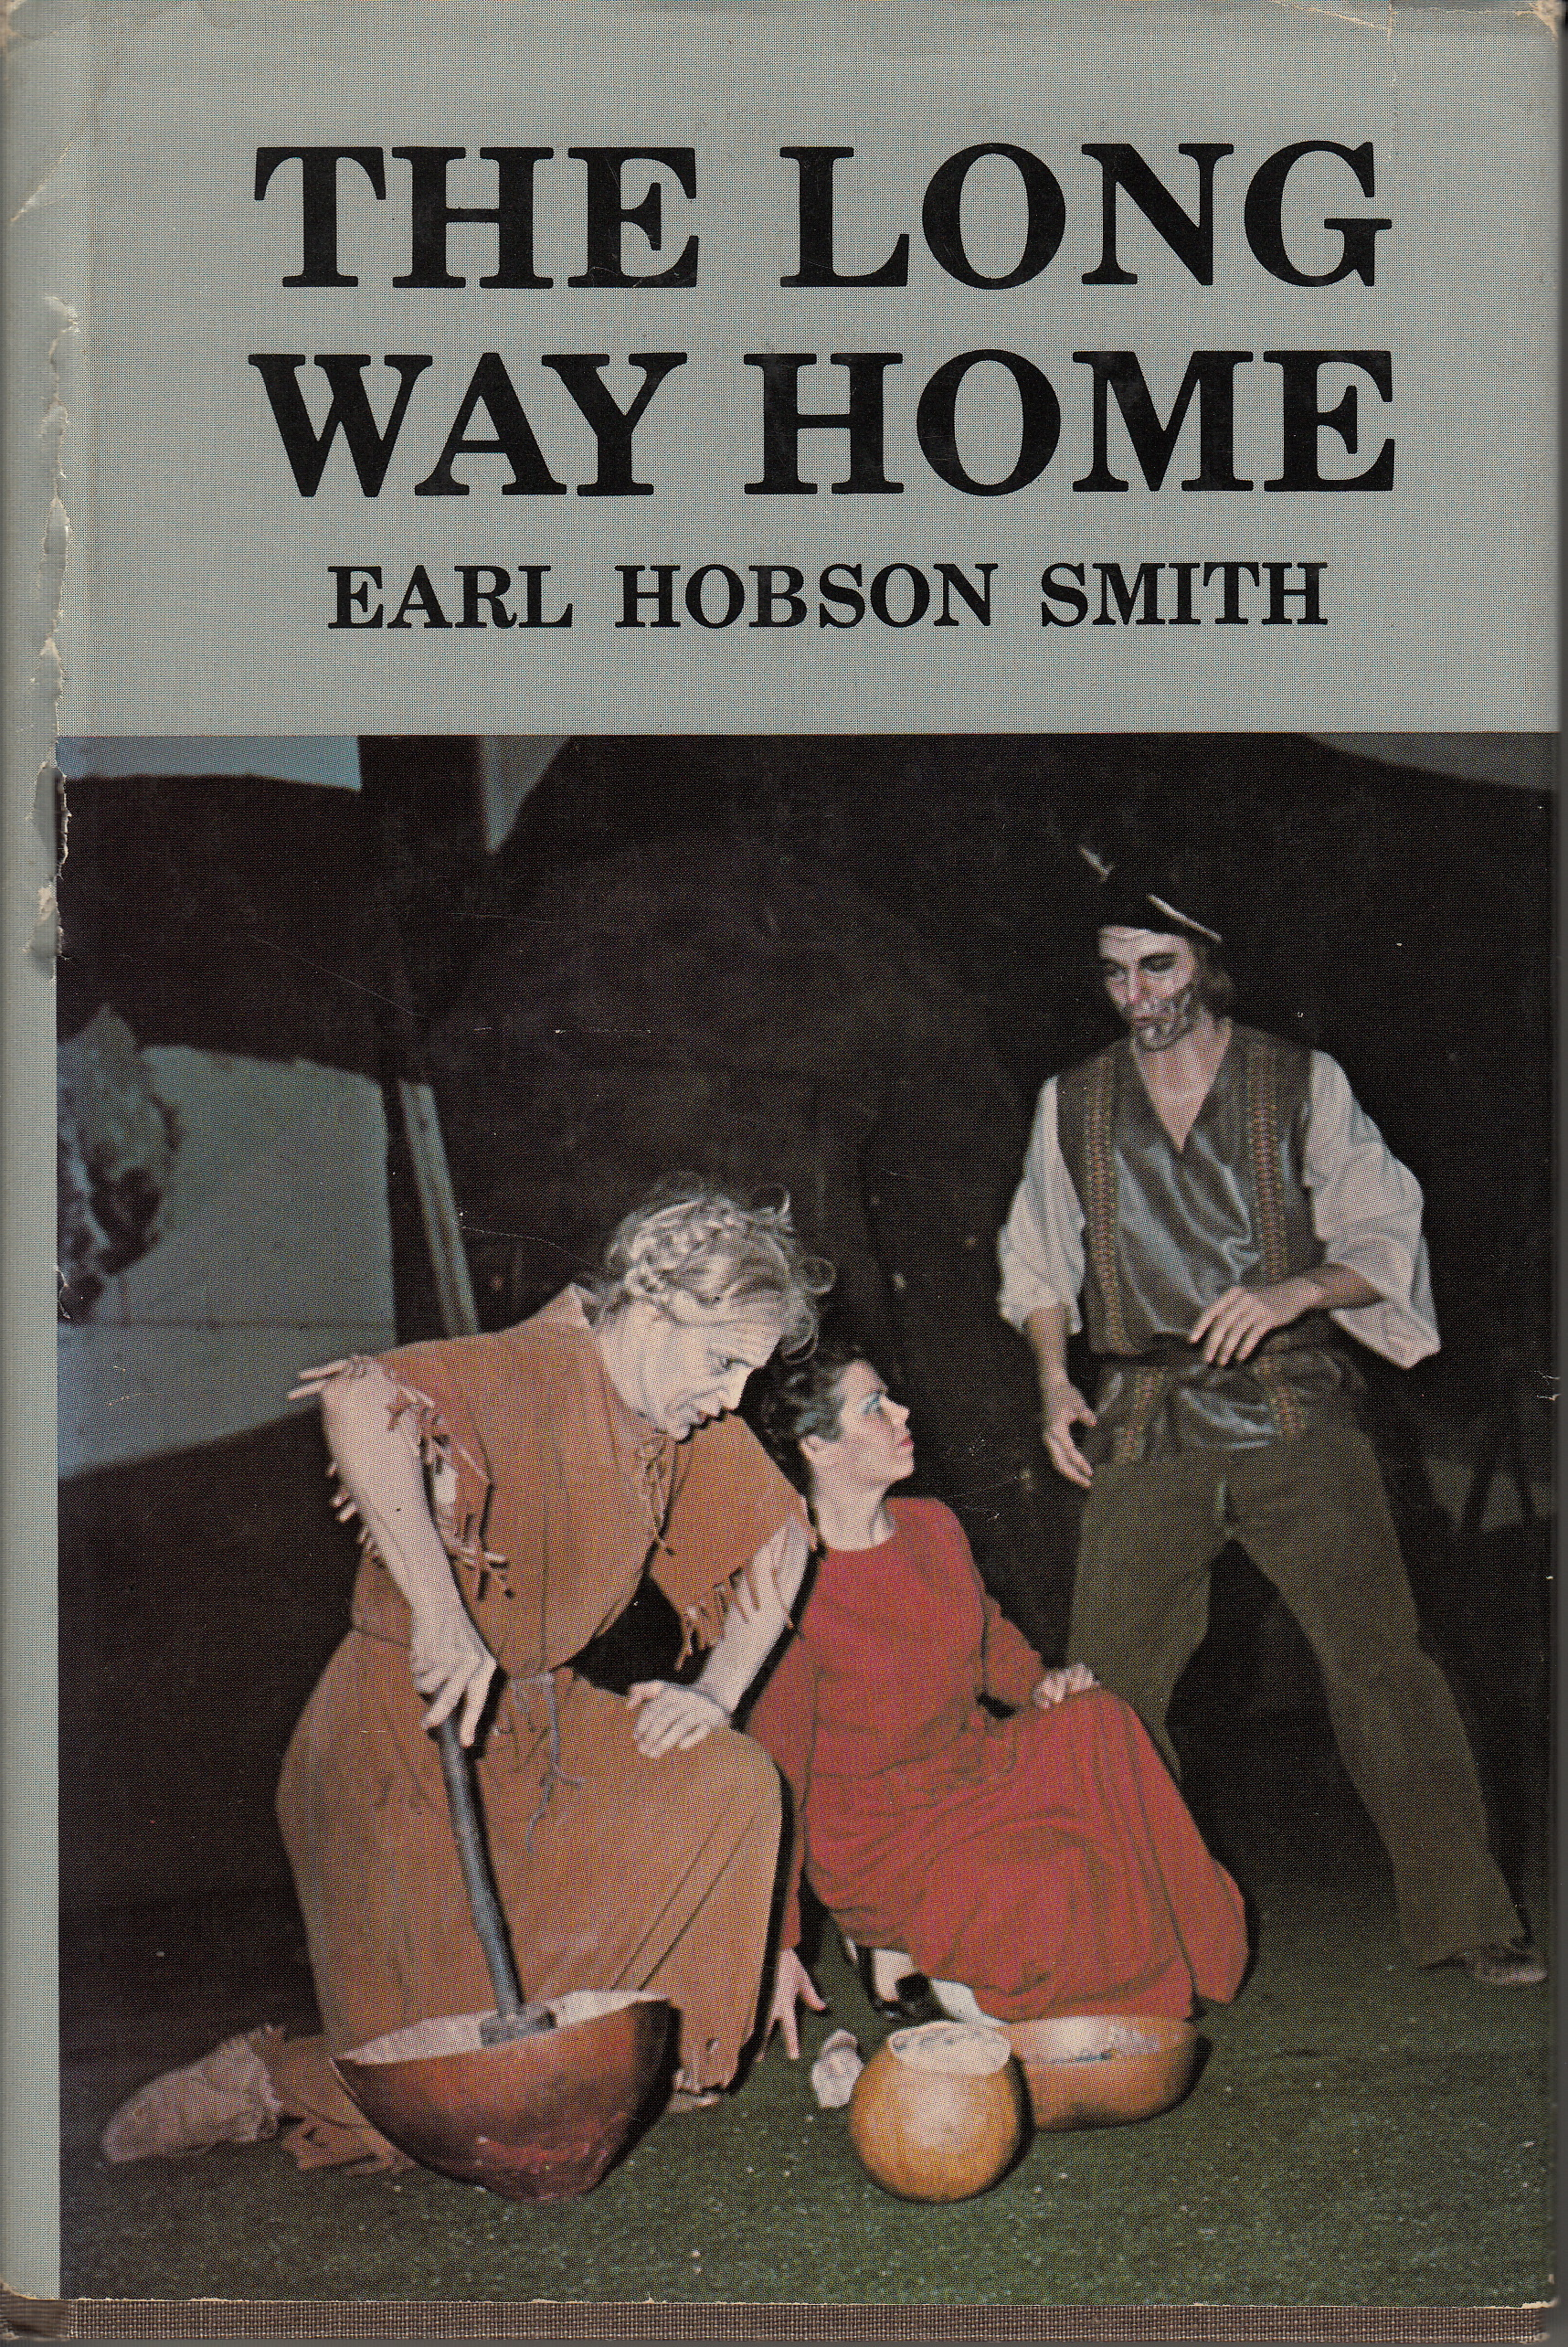 Cover of The Long Way Home by Earl Hobson Smith (1976).  The Long Way Home was an outdoor historical drama adaptation of the story of Mary Draper Ingles' capture by and escape from the Shawnee Indians. (PS 3537 .M346 L56 1976. Robert and Virginia Tunstall Trust Fund 2006/2007. Image by Petrina Jackson)